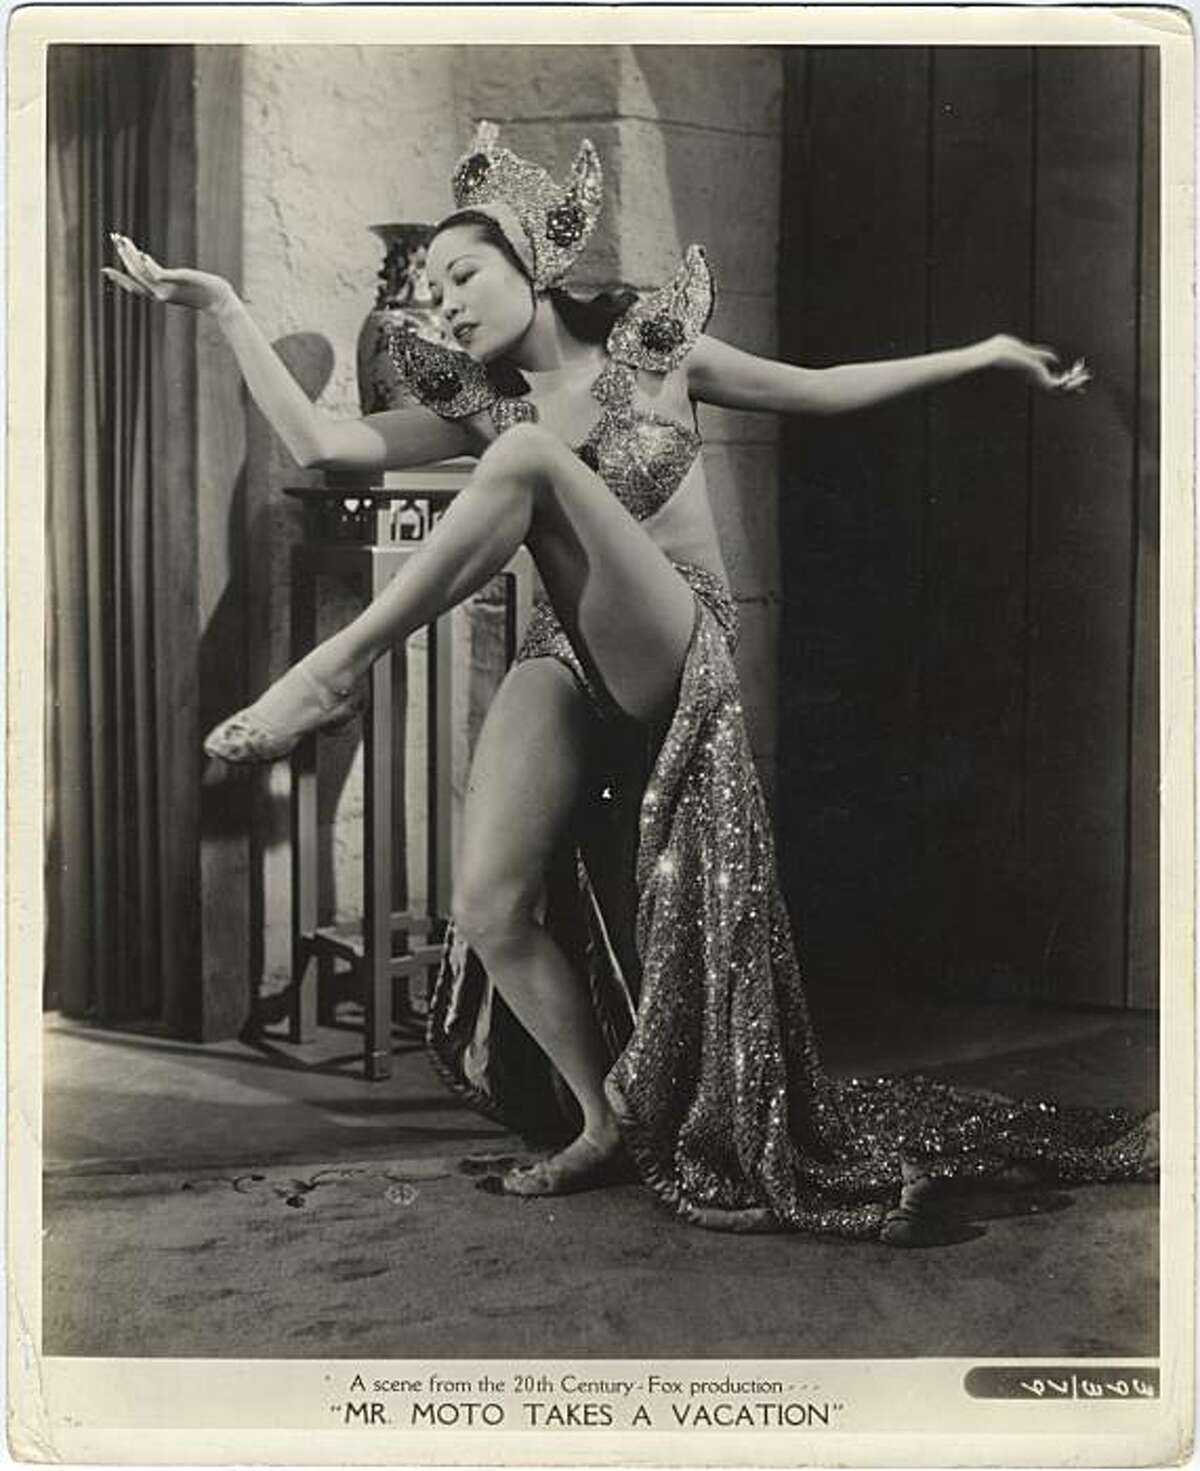 Jadin Wong, a Chinese American performer who was a mainstay at the old Forbidden City nightclub in San Francisco before going on to Broadway and Hollywood, died March 30 2010, at age 96.